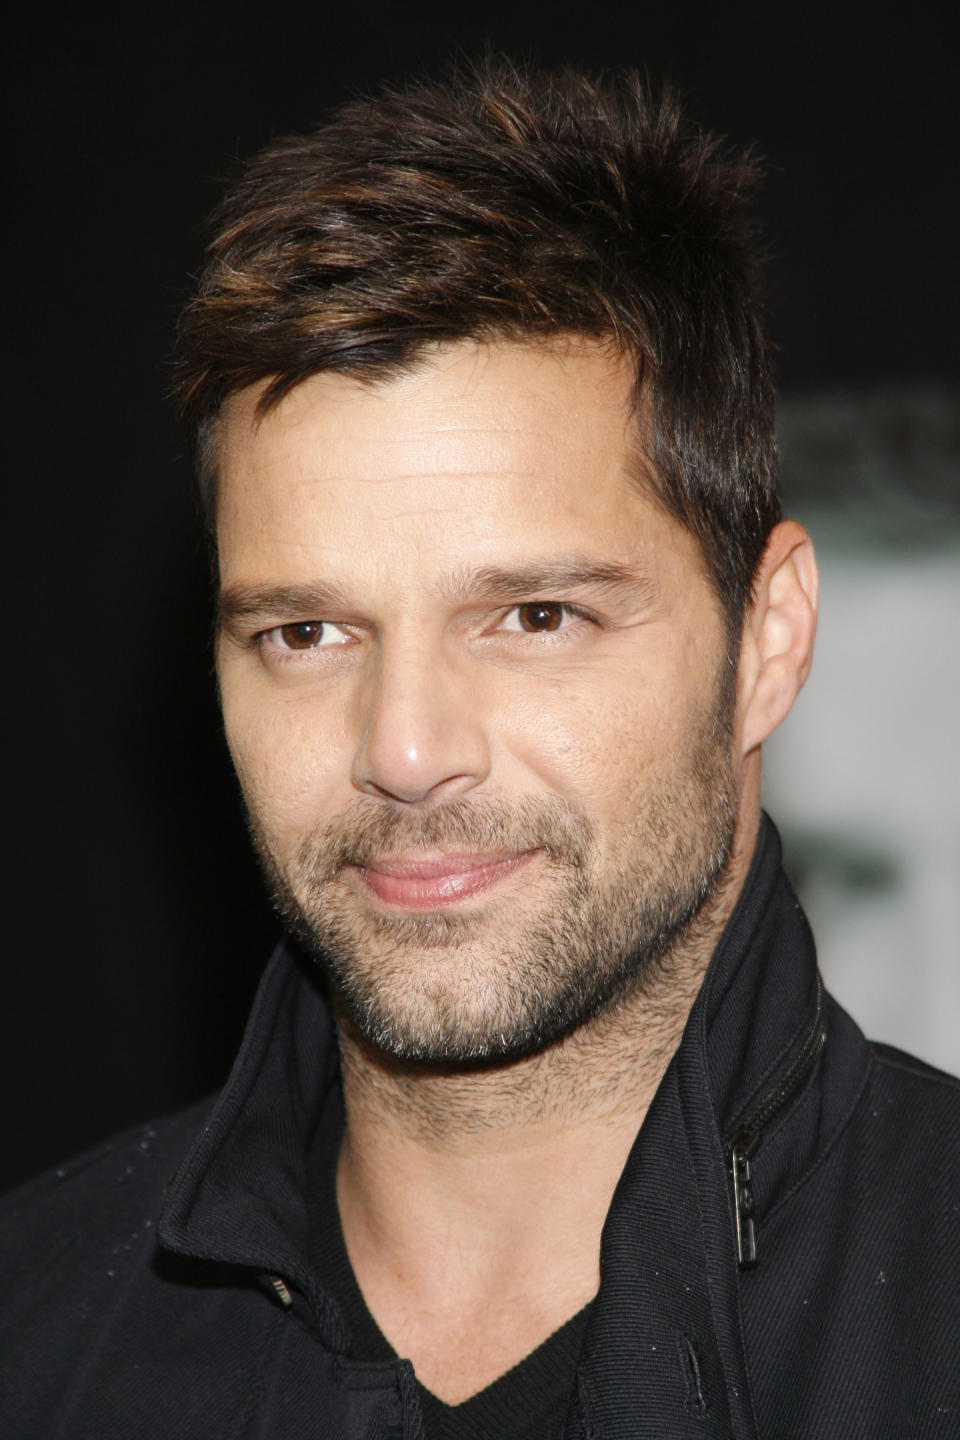 Ricky Martin. (Photo by Sylvain Gaboury/Patrick McMullan via Getty Images)